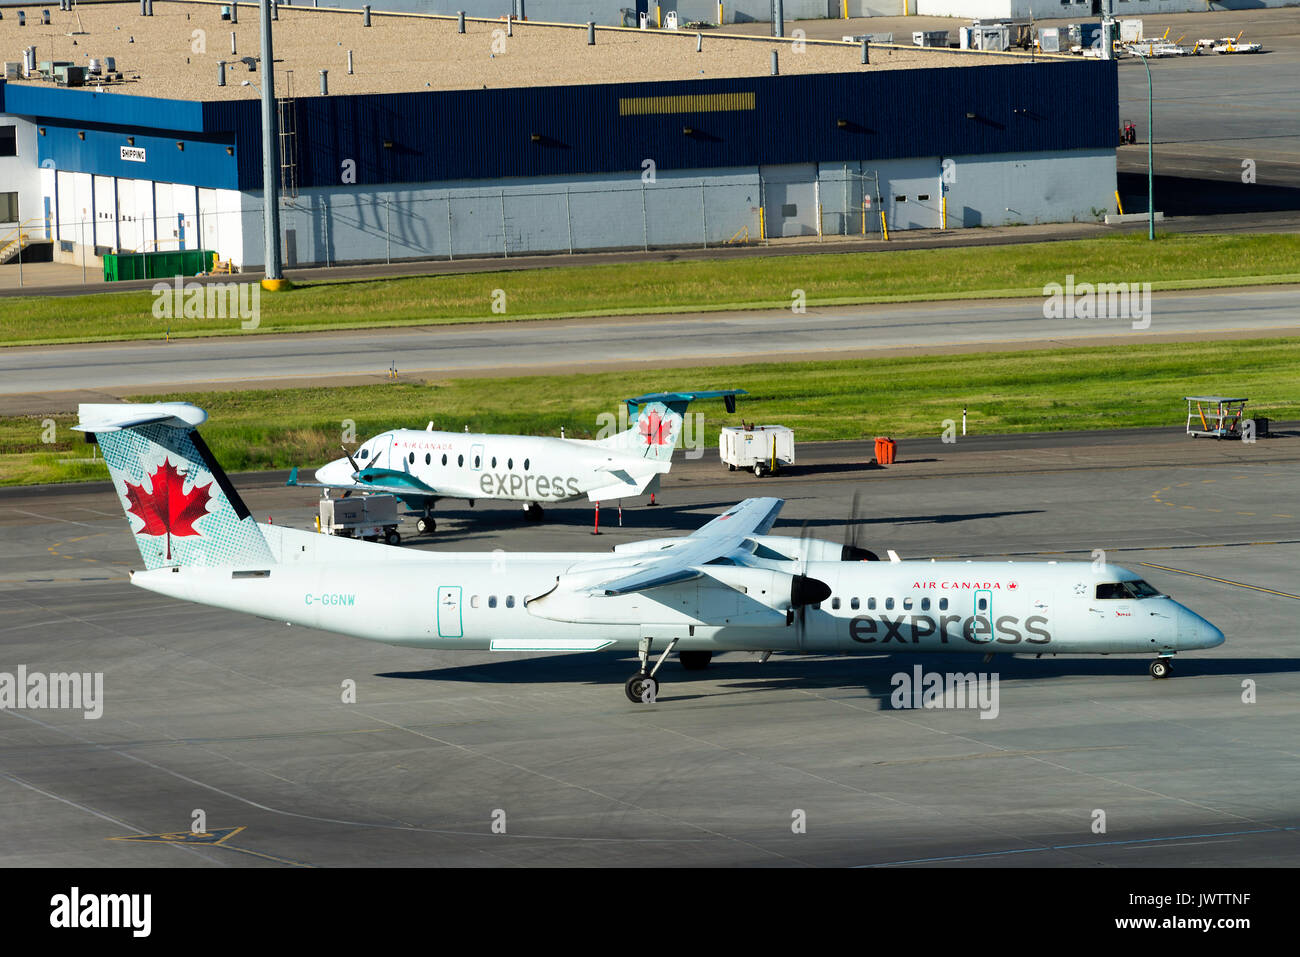 Air Canada Express Airline Bombardier Dash 8-402 Turboprop Airliner Taxiing Past Beechcraft 1900D Aircraft at Calgary Airport Alberta Canada - Stock Image